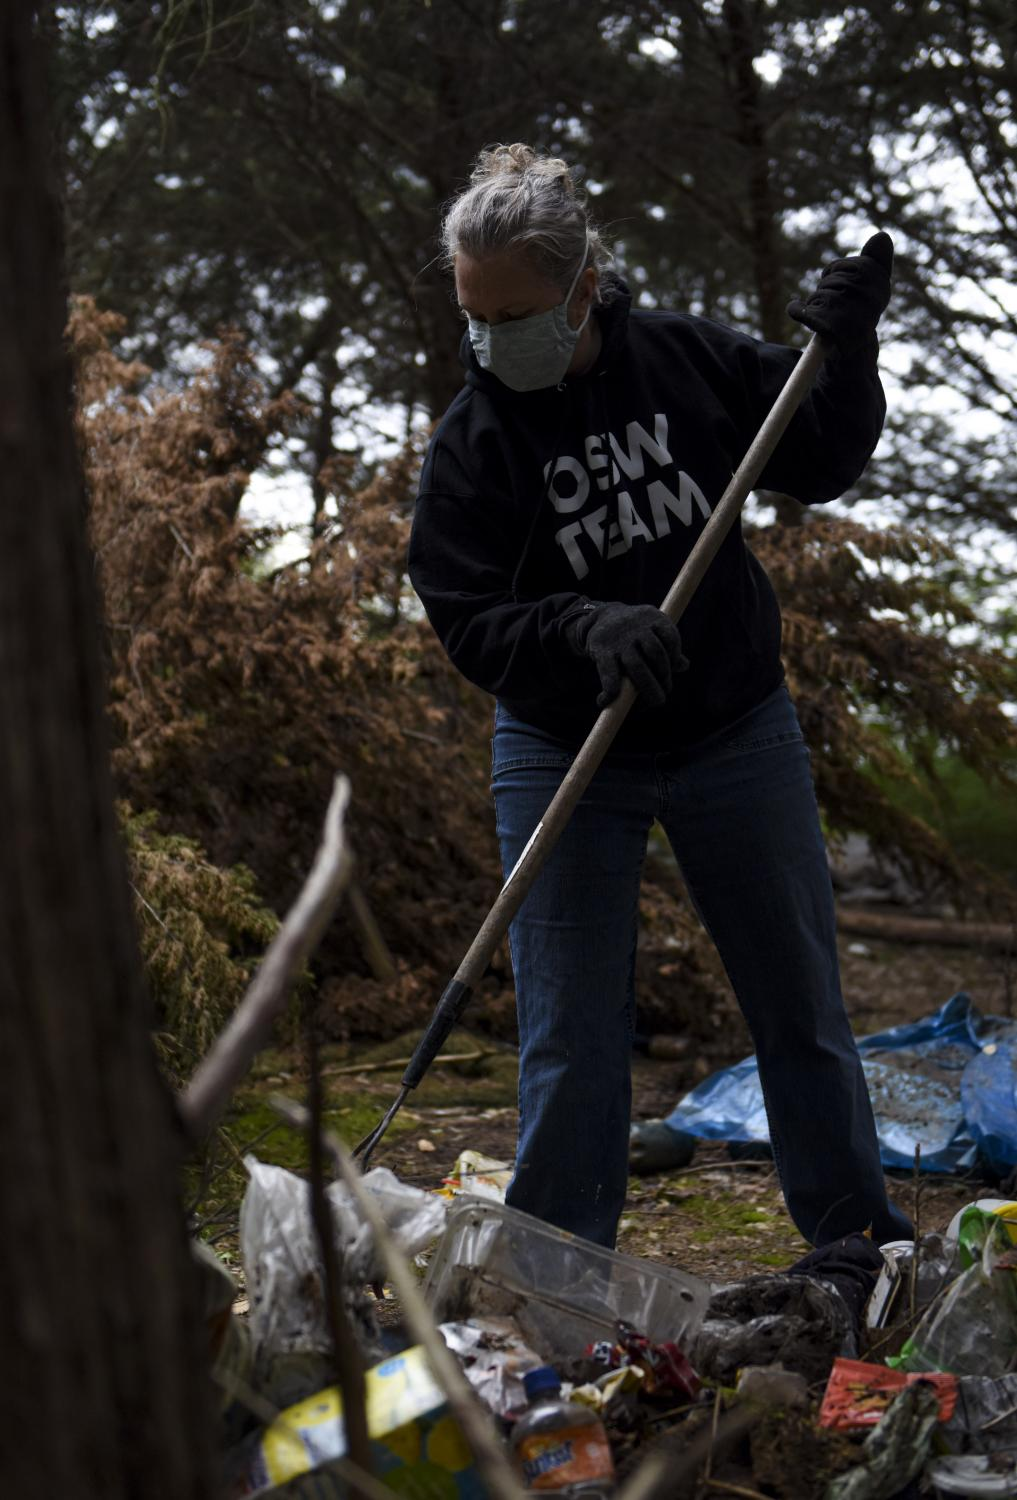 """Community volunteer Dawn Finney rakes a pile of garbage at the abandoned campsite on Saturday, April 11, 2020, in Columbia. Finney said it is hard to see people having to live like this. """"When I first saw the site, it was like a punch in the stomach,"""" she said. """"But it's not like these people have trash services."""""""